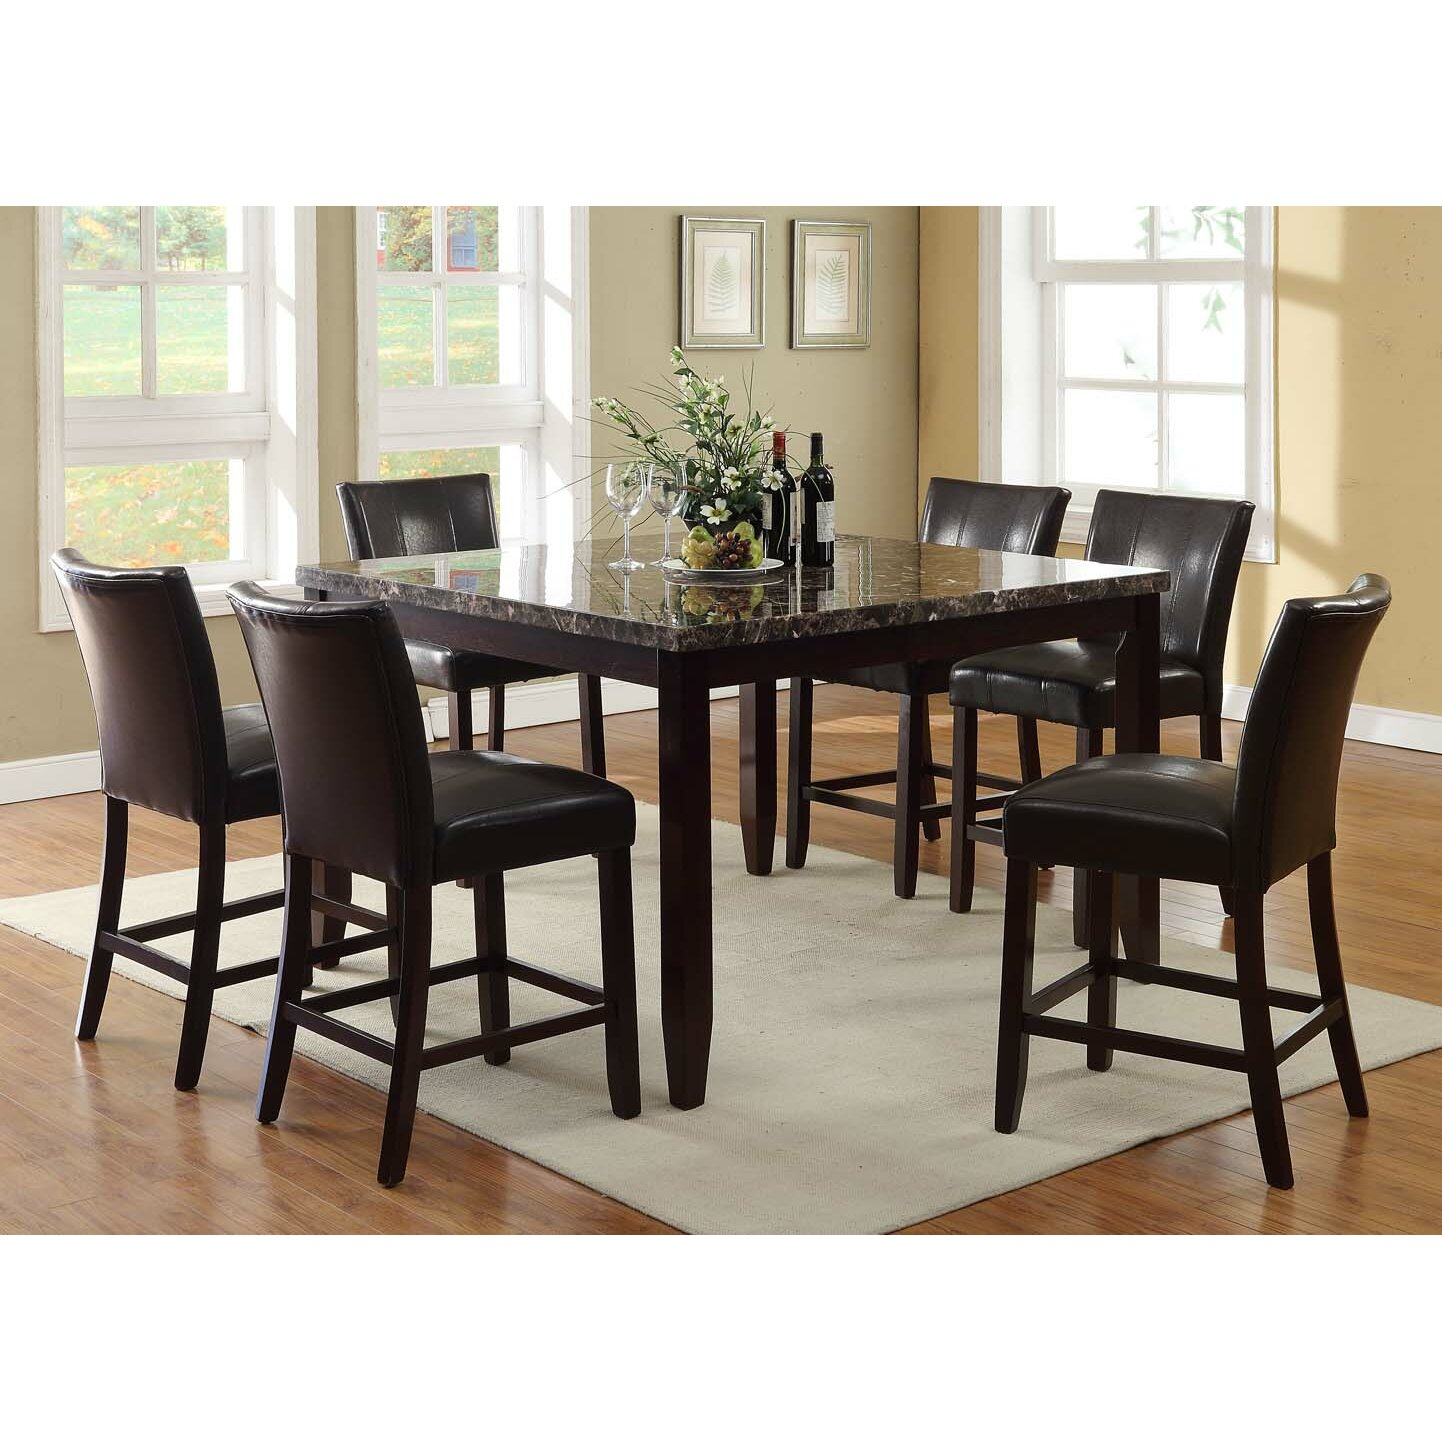 In style harvard 7 piece counter height dining set amp for 7 piece dining room set counter height